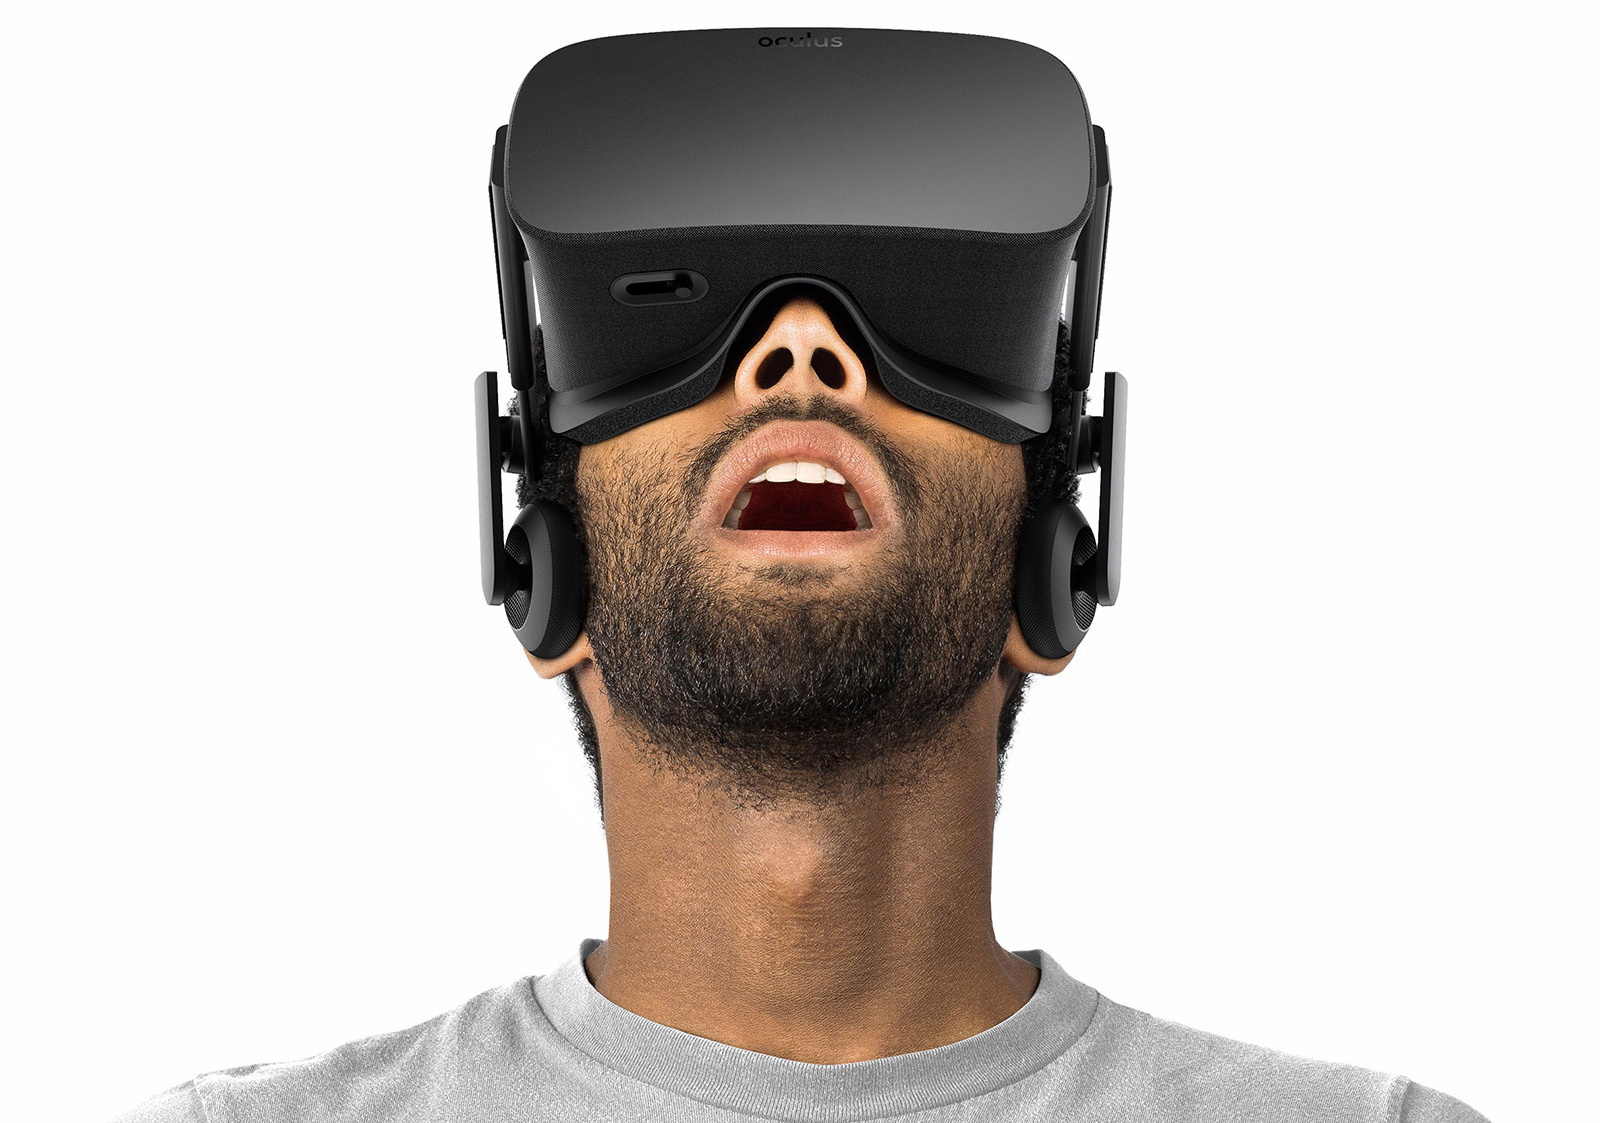 Is Oculus opening an office in the U.K?